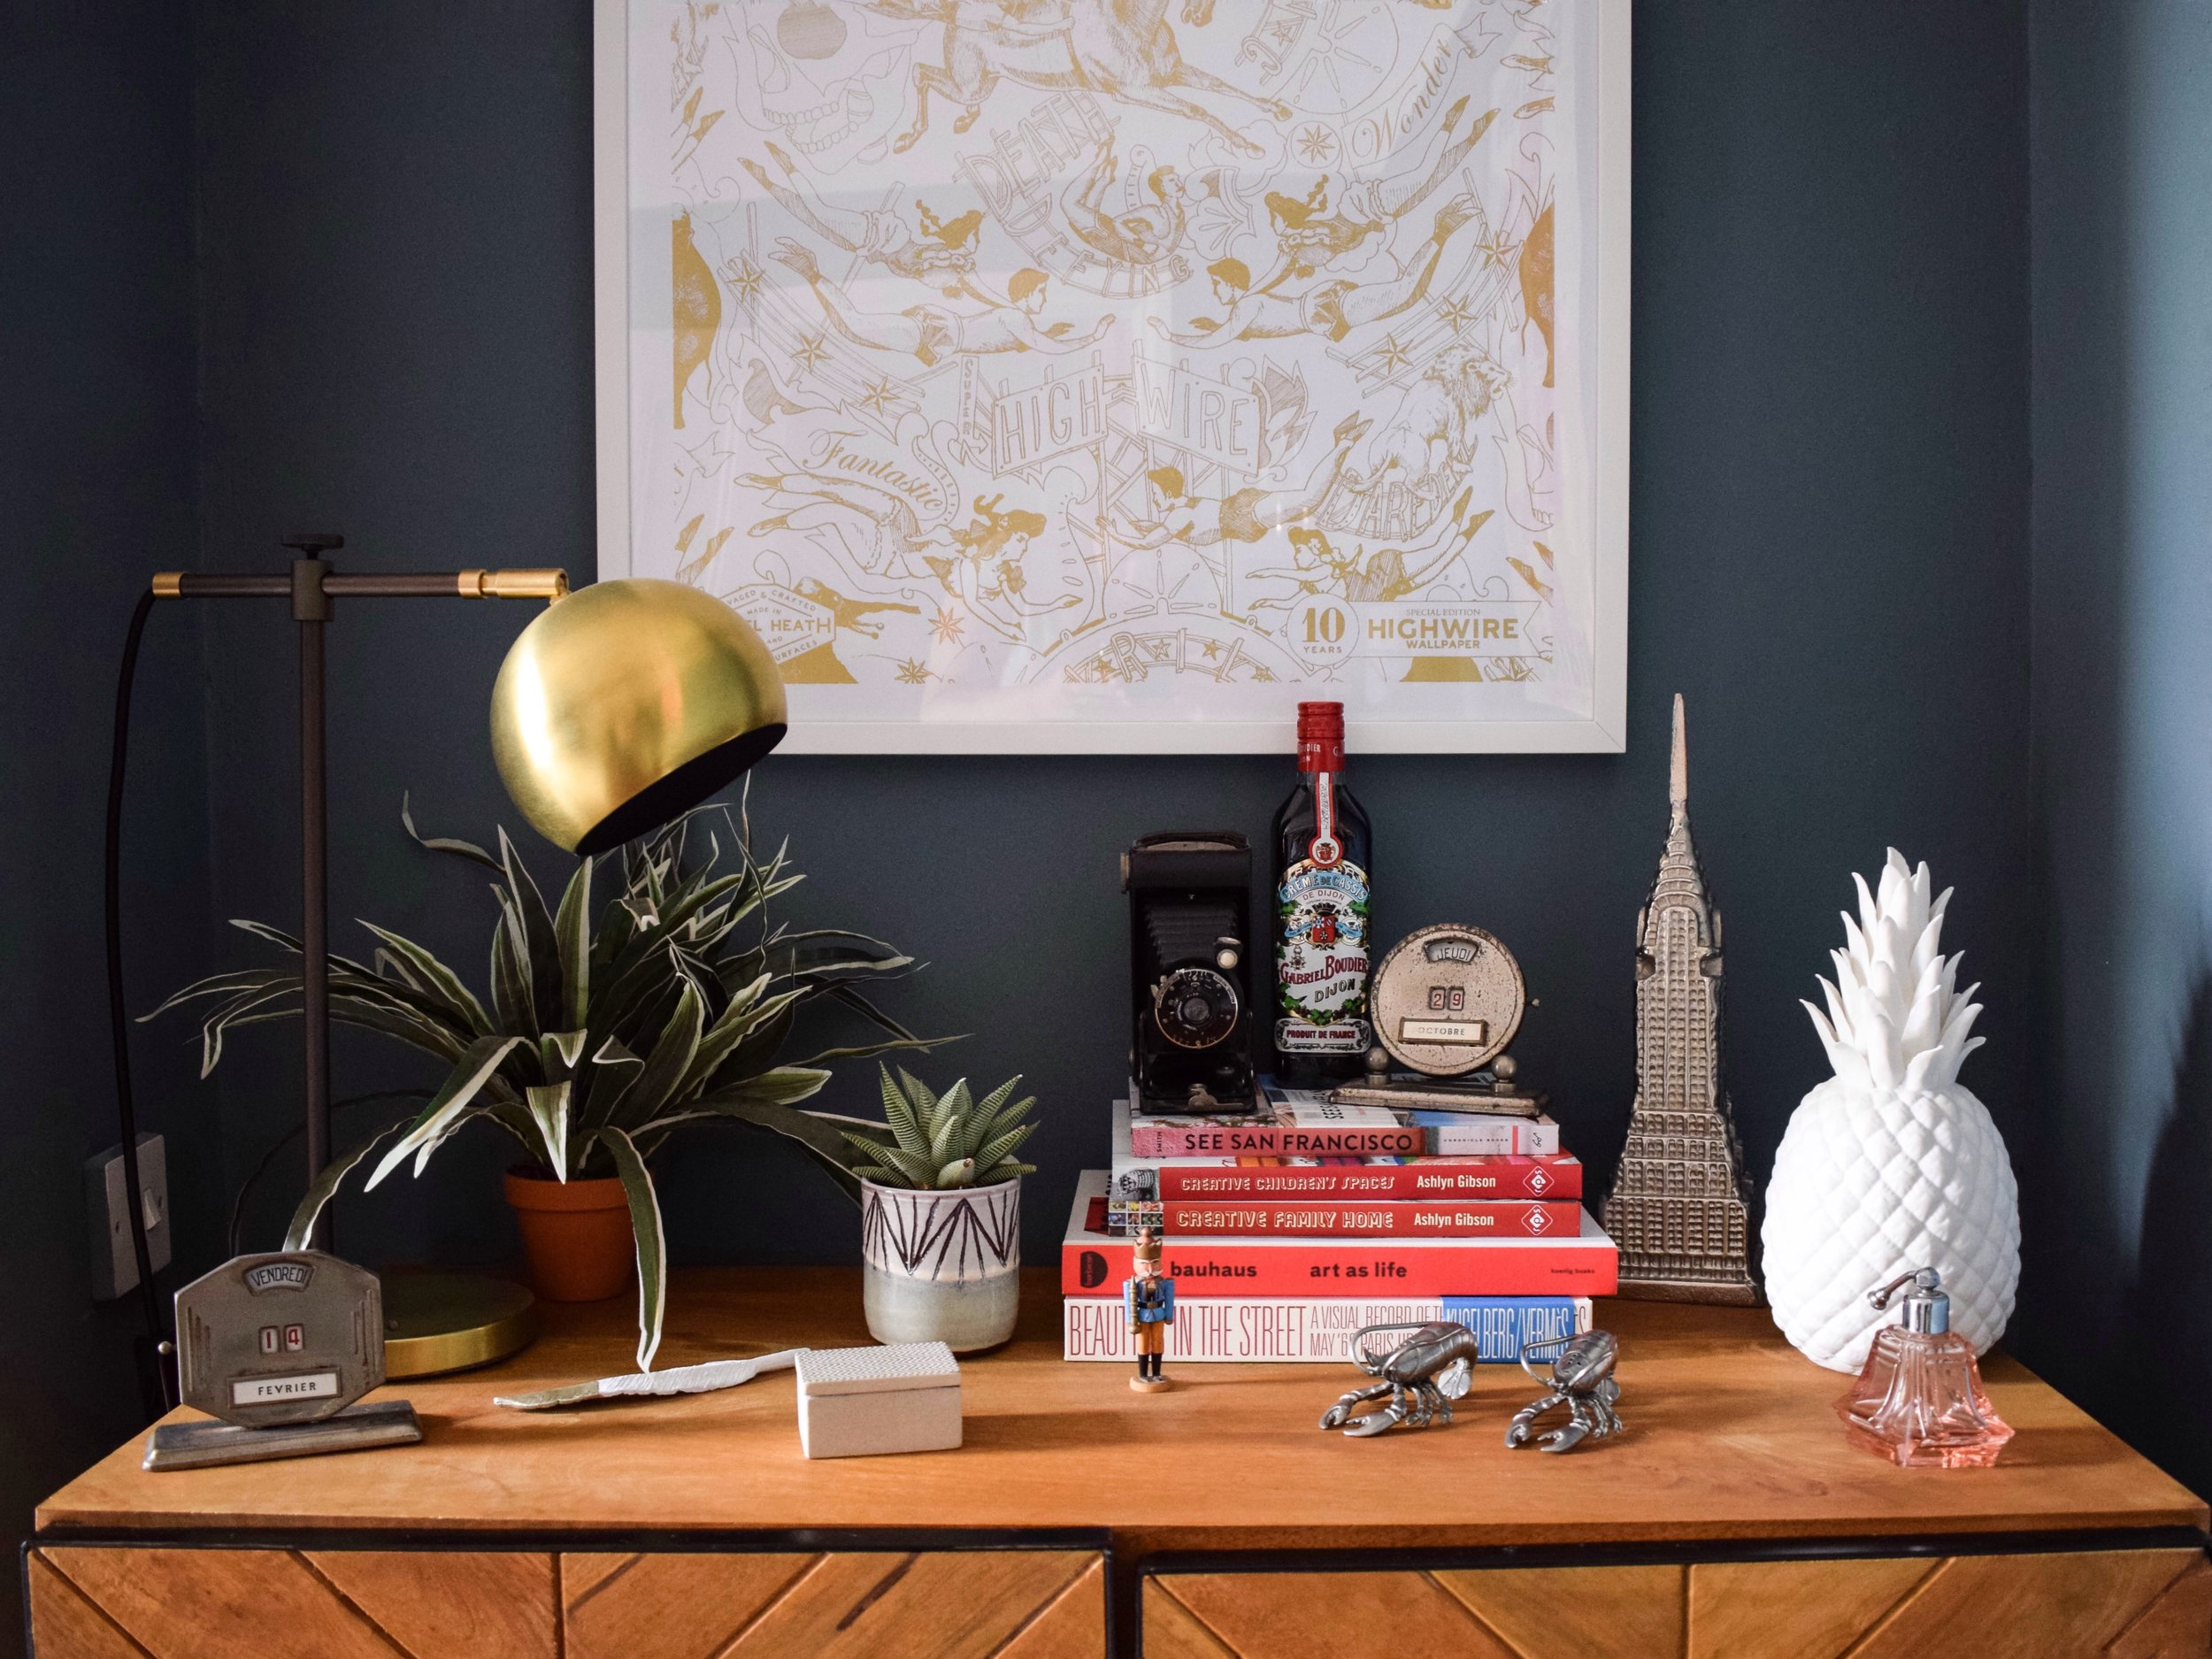 Eclectic Modern Bohemian interior styling art deco cocktail room copy.jpg